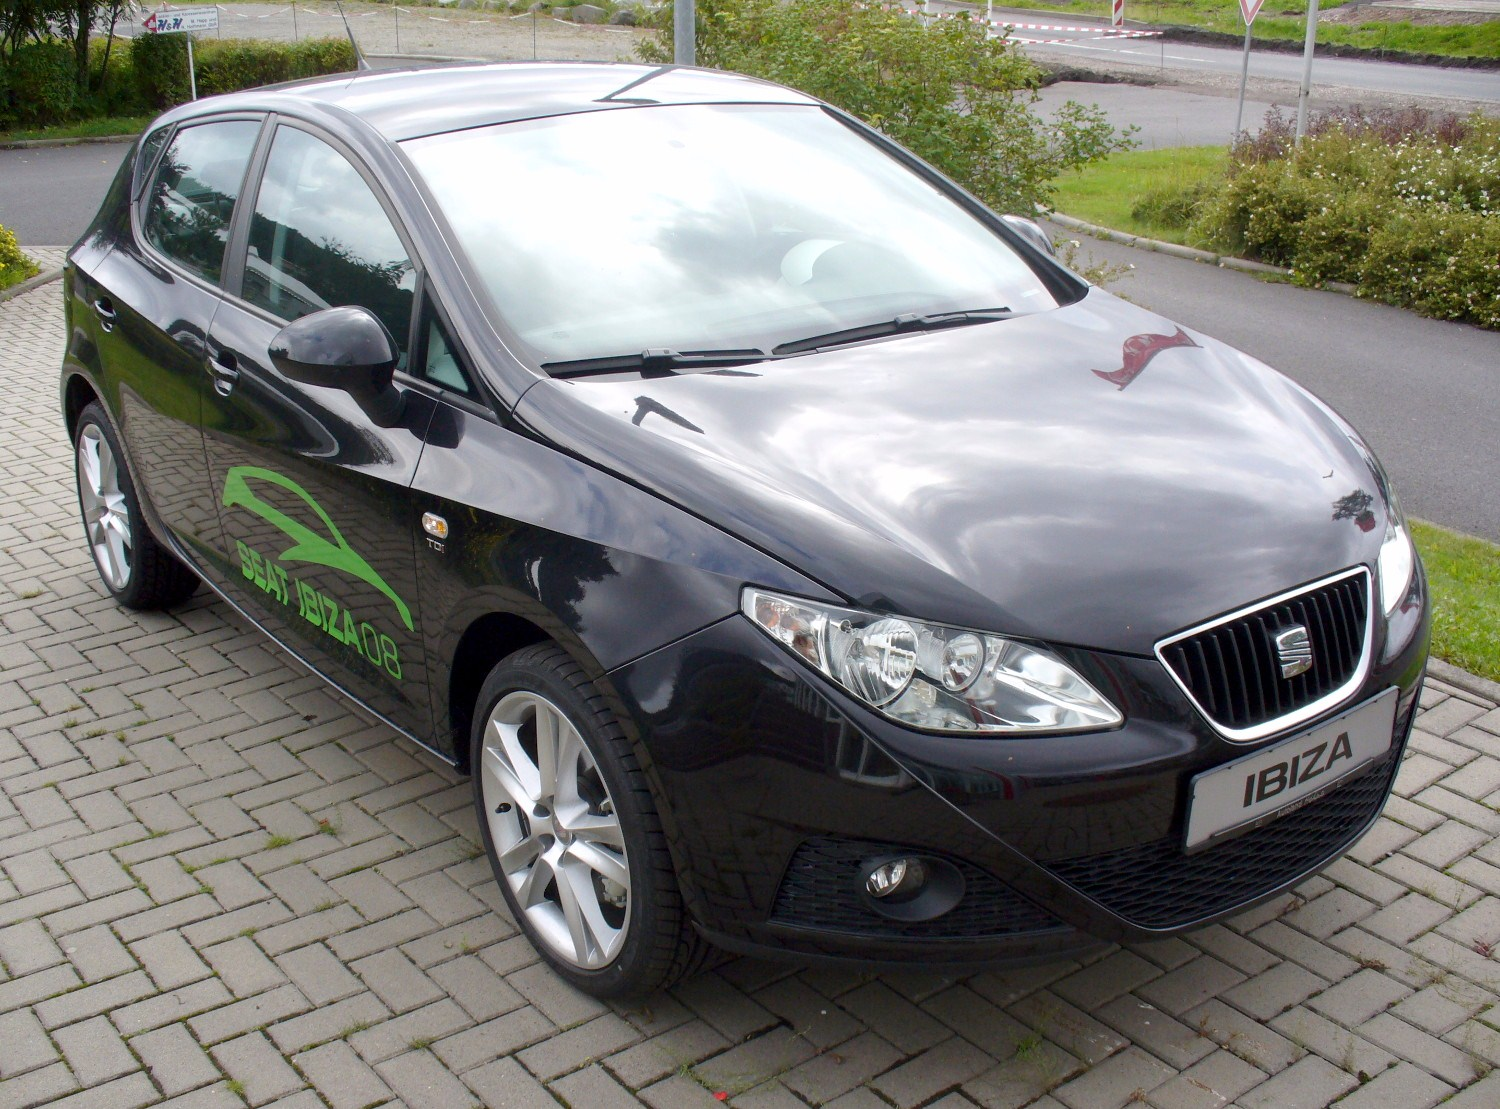 file seat ibiza 6j 1 9 tdi sport magicoschwarz jpg wikipedia. Black Bedroom Furniture Sets. Home Design Ideas